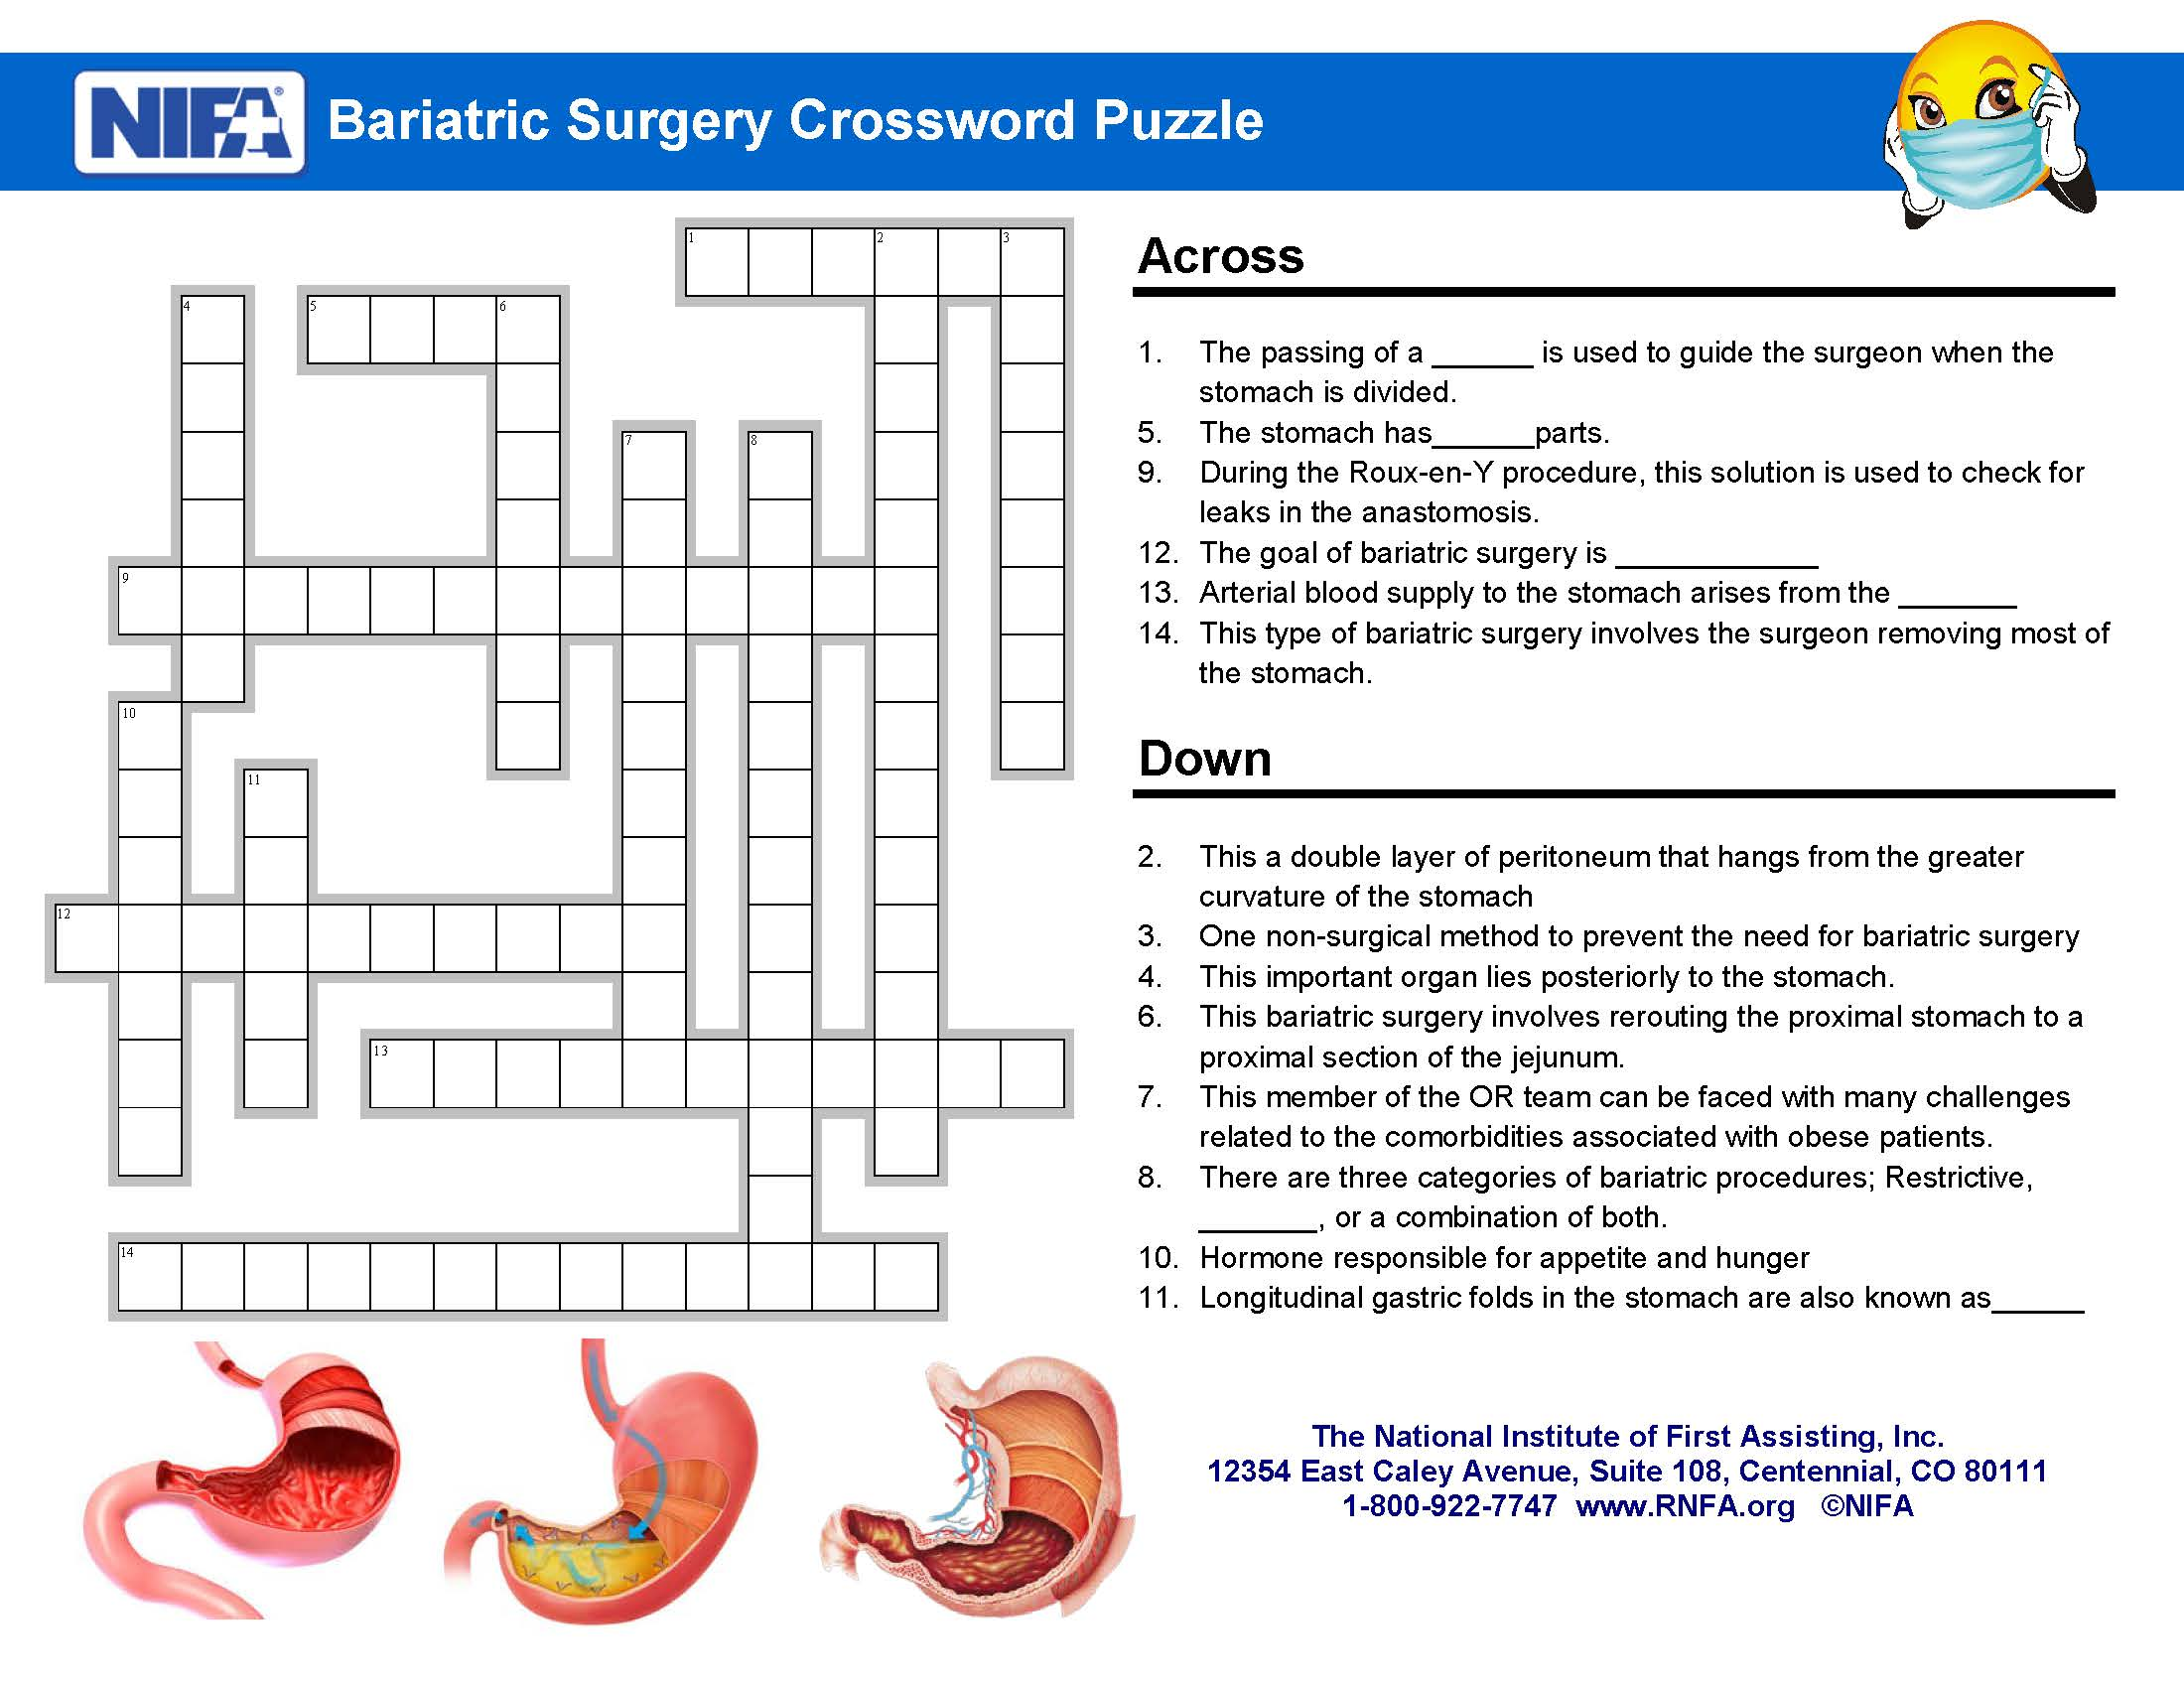 Bariatric Surgery Crossword Clues - January 2017 - RNFA